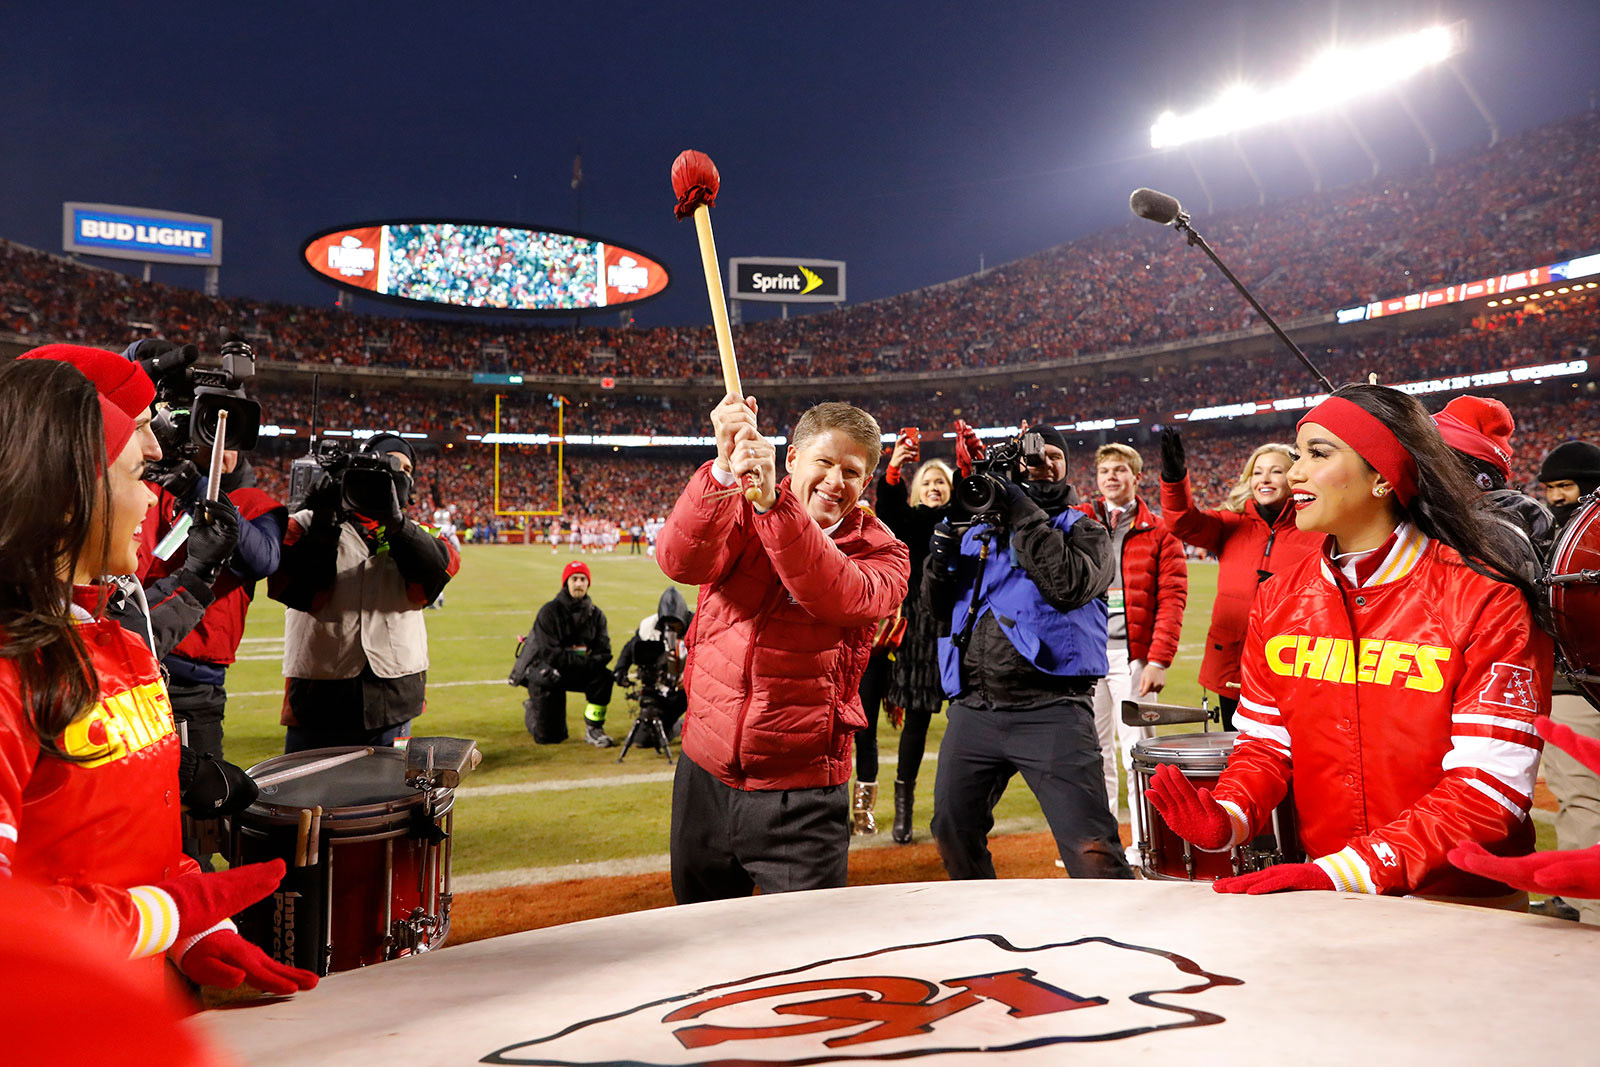 Kansas City Chiefs owner Clark Hunt bangs the drum before the AFC Championship Game against the New England Patriots on January 20, 2019.